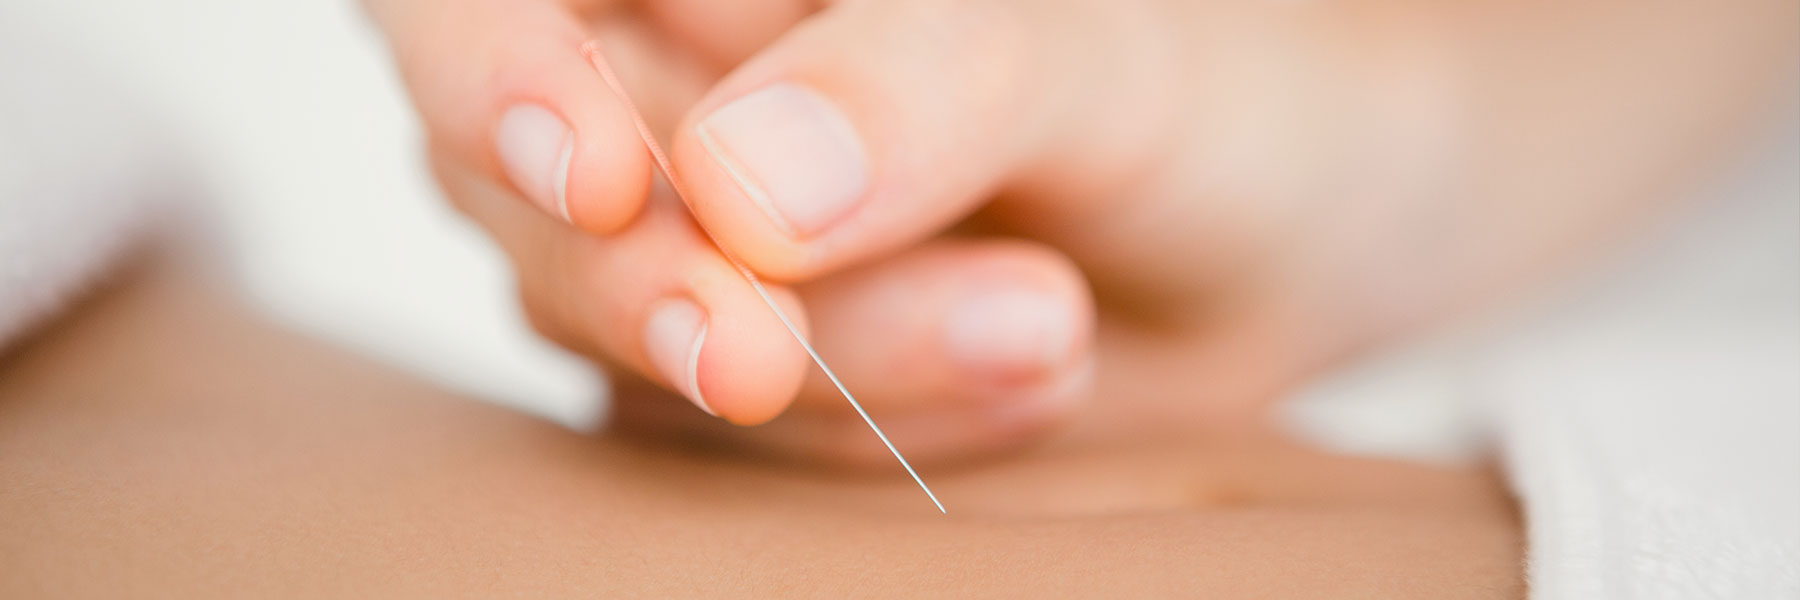 Benefits of Acupuncture treatment for endometriosis